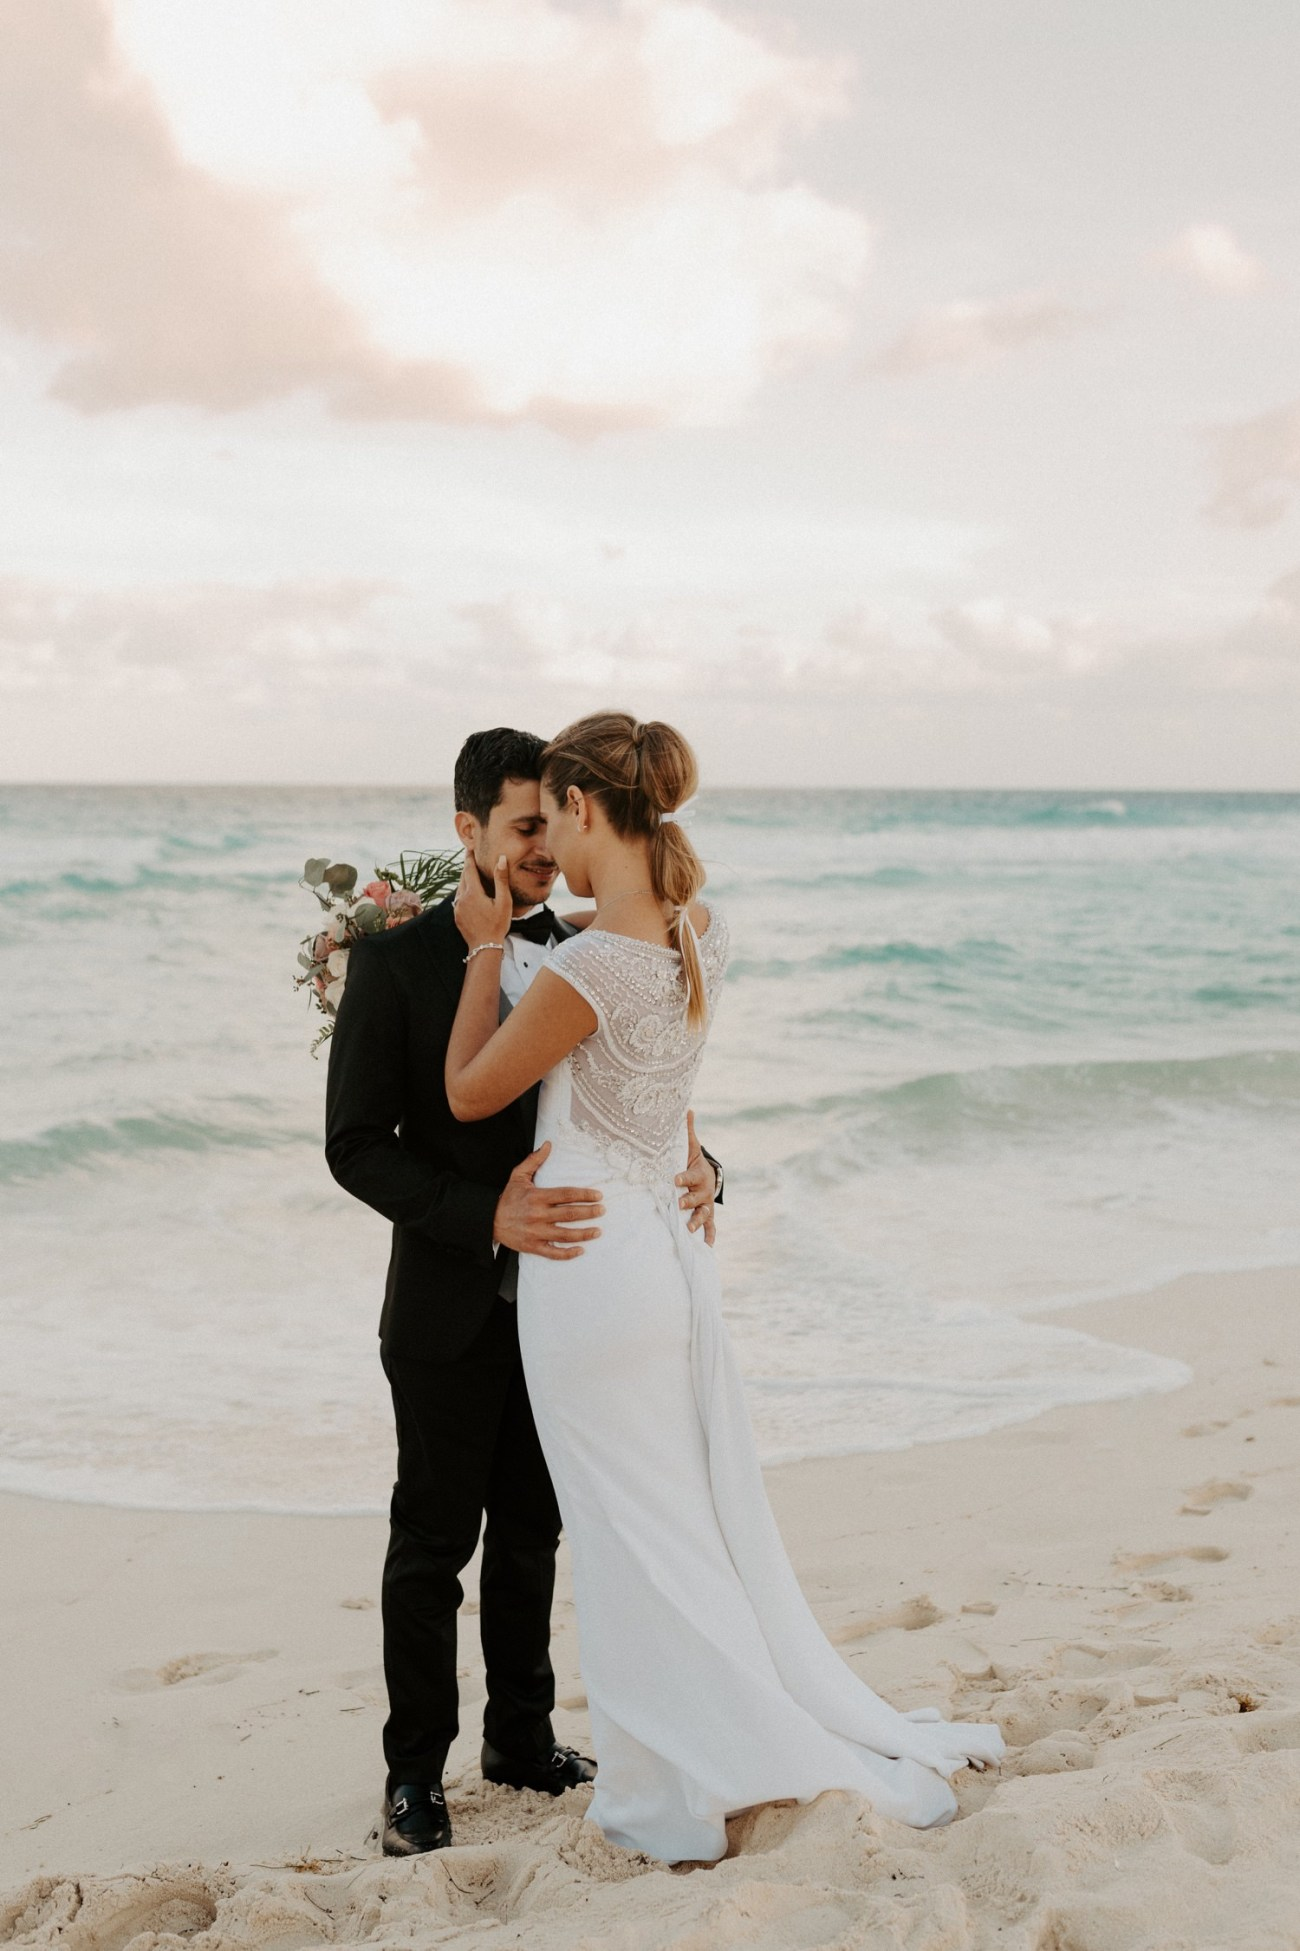 Cancun Destination Wedding Mexico Tulum Wedding Photographer Anais Possamai Photography 044